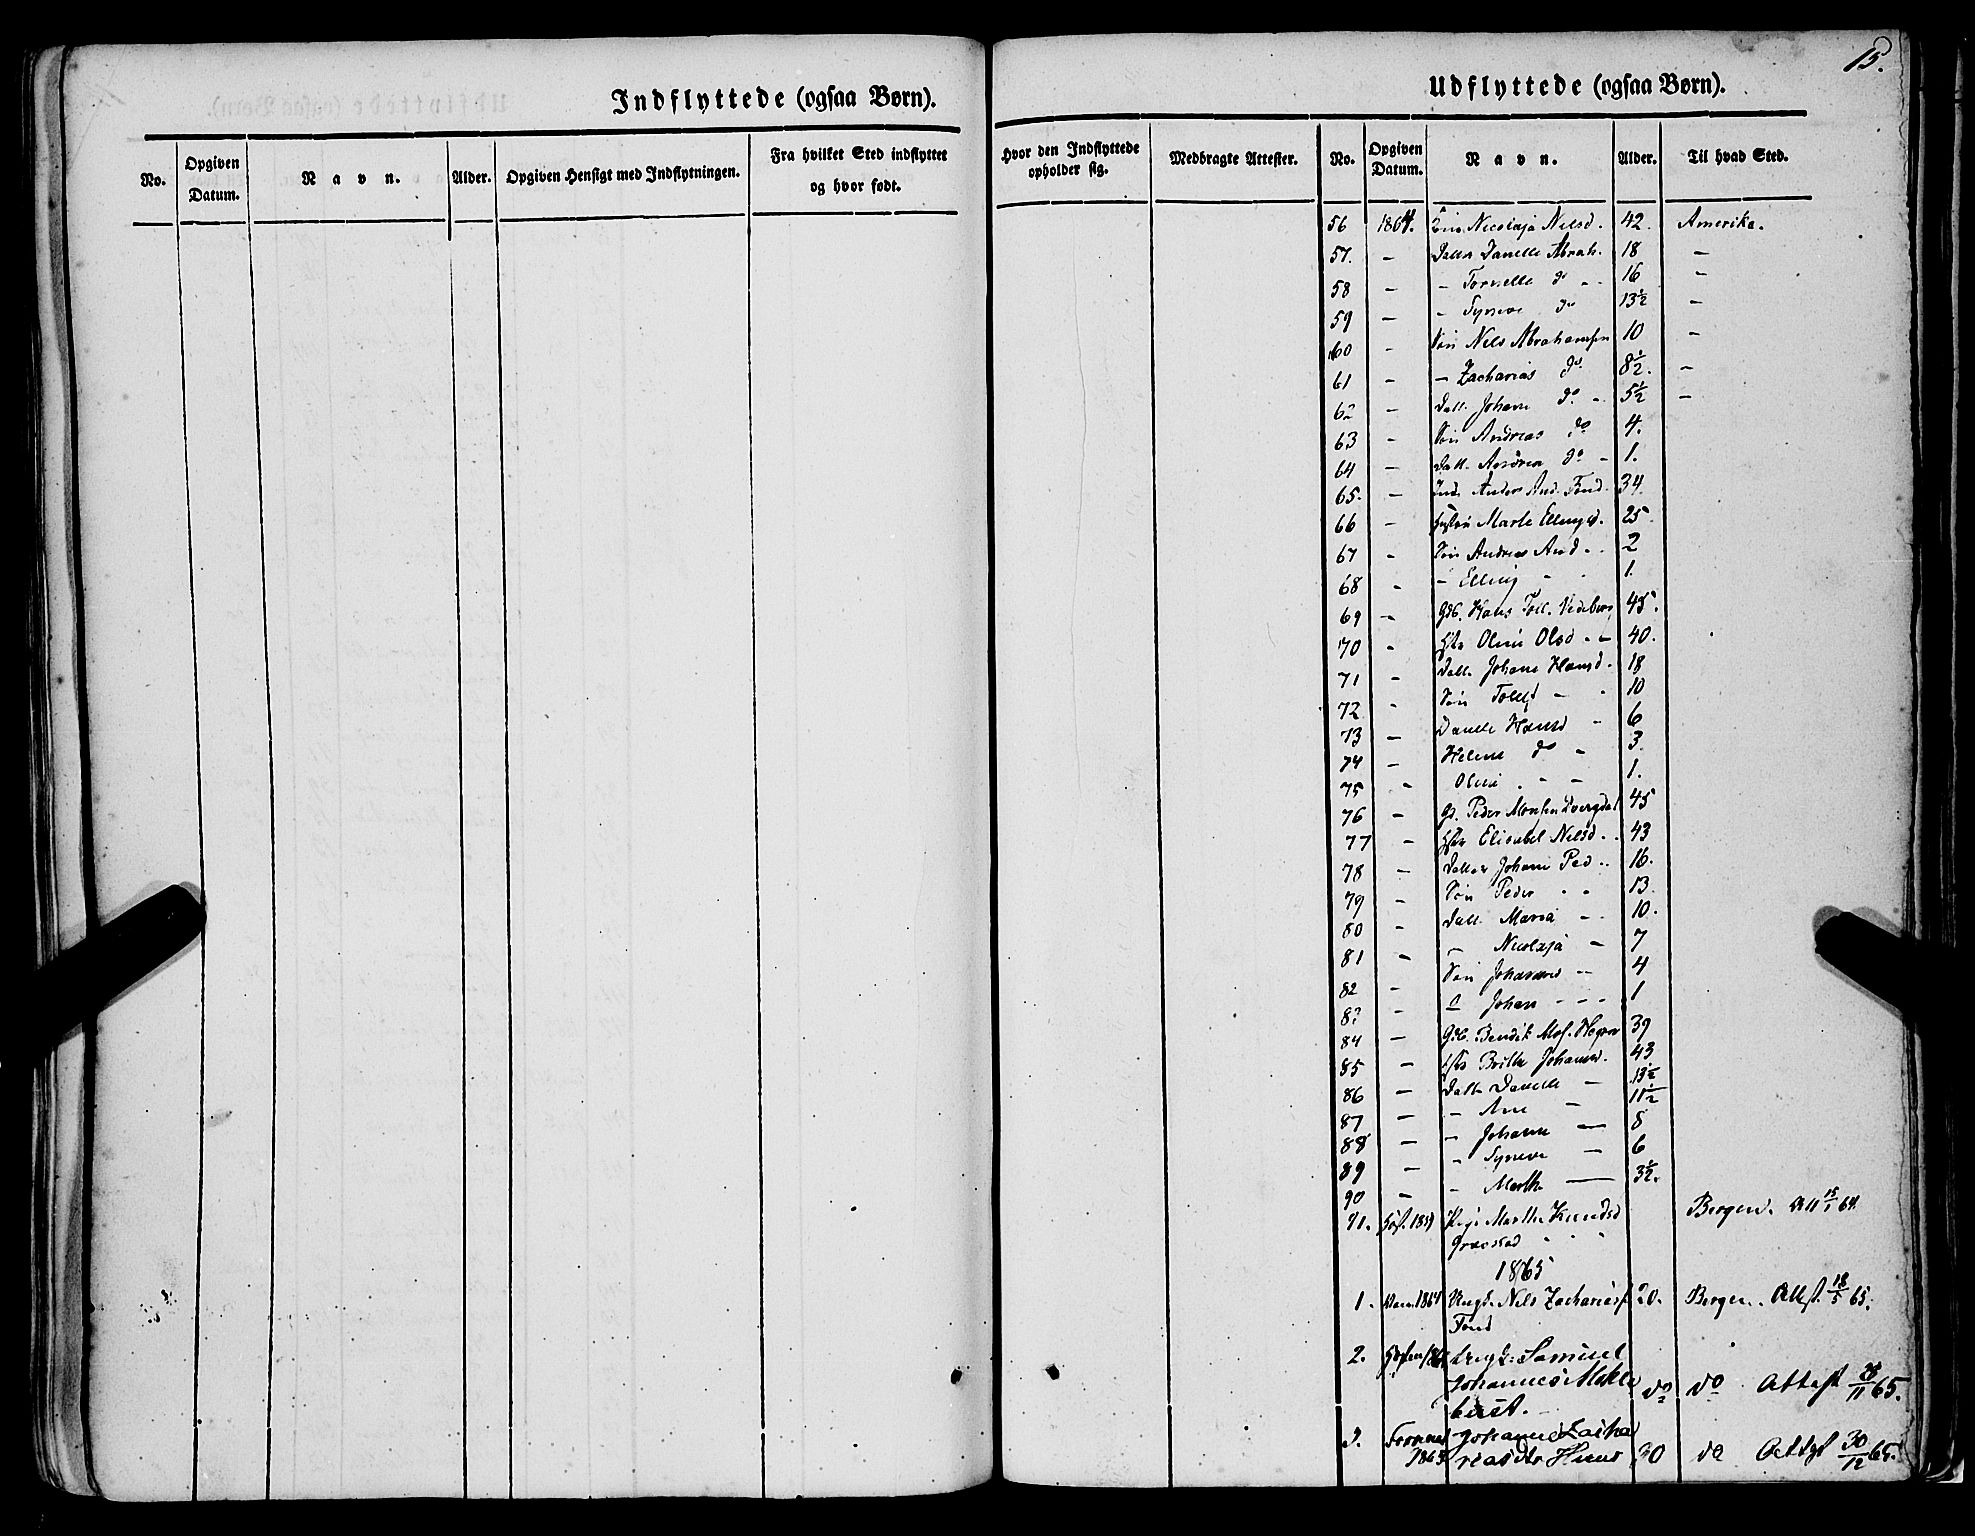 SAB, Jølster sokneprestembete, H/Haa/Haaa/L0010: Parish register (official) no. A 10, 1847-1865, p. 15